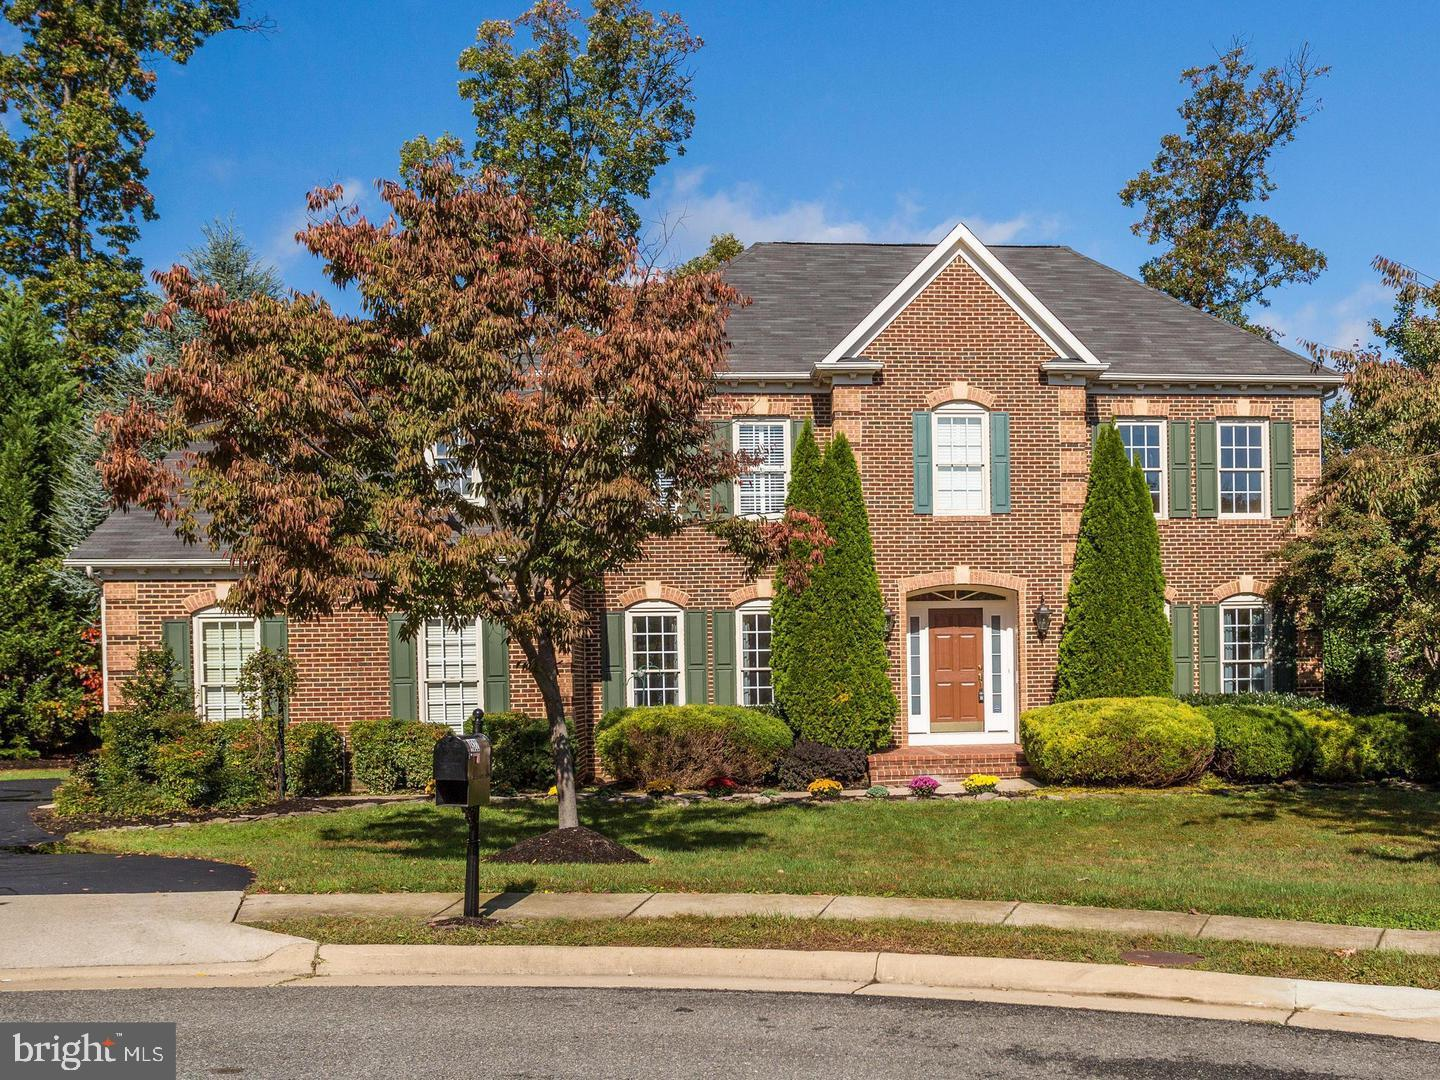 STUNNING LIGHT FILLED COLONIAL W/4 BD, 4.5BA, HRDWD FLRS, OPEN Floor Plan, Wet Bar, Main Level Office/Bedroom,  CHEF'S EAT-IN KIT, FAM RM W/FPL, X-LG REC RM, EXERCISE SPACE, STUDY/OFC, 2 CAR GARAGE, OVER 5000 SF, AND SO MUCH MORE!!! HOUSE IS PERFECT. Agent Related to Seller.  Near Metro, 395, inside Beltway.  Minutes from Amazon HQ2, Downtown DC, Old Town Alexandria,  Thomas Jefferson High School, Harris Teeter, Shopping and more! Get in to this superb community at the lowest price in three years!